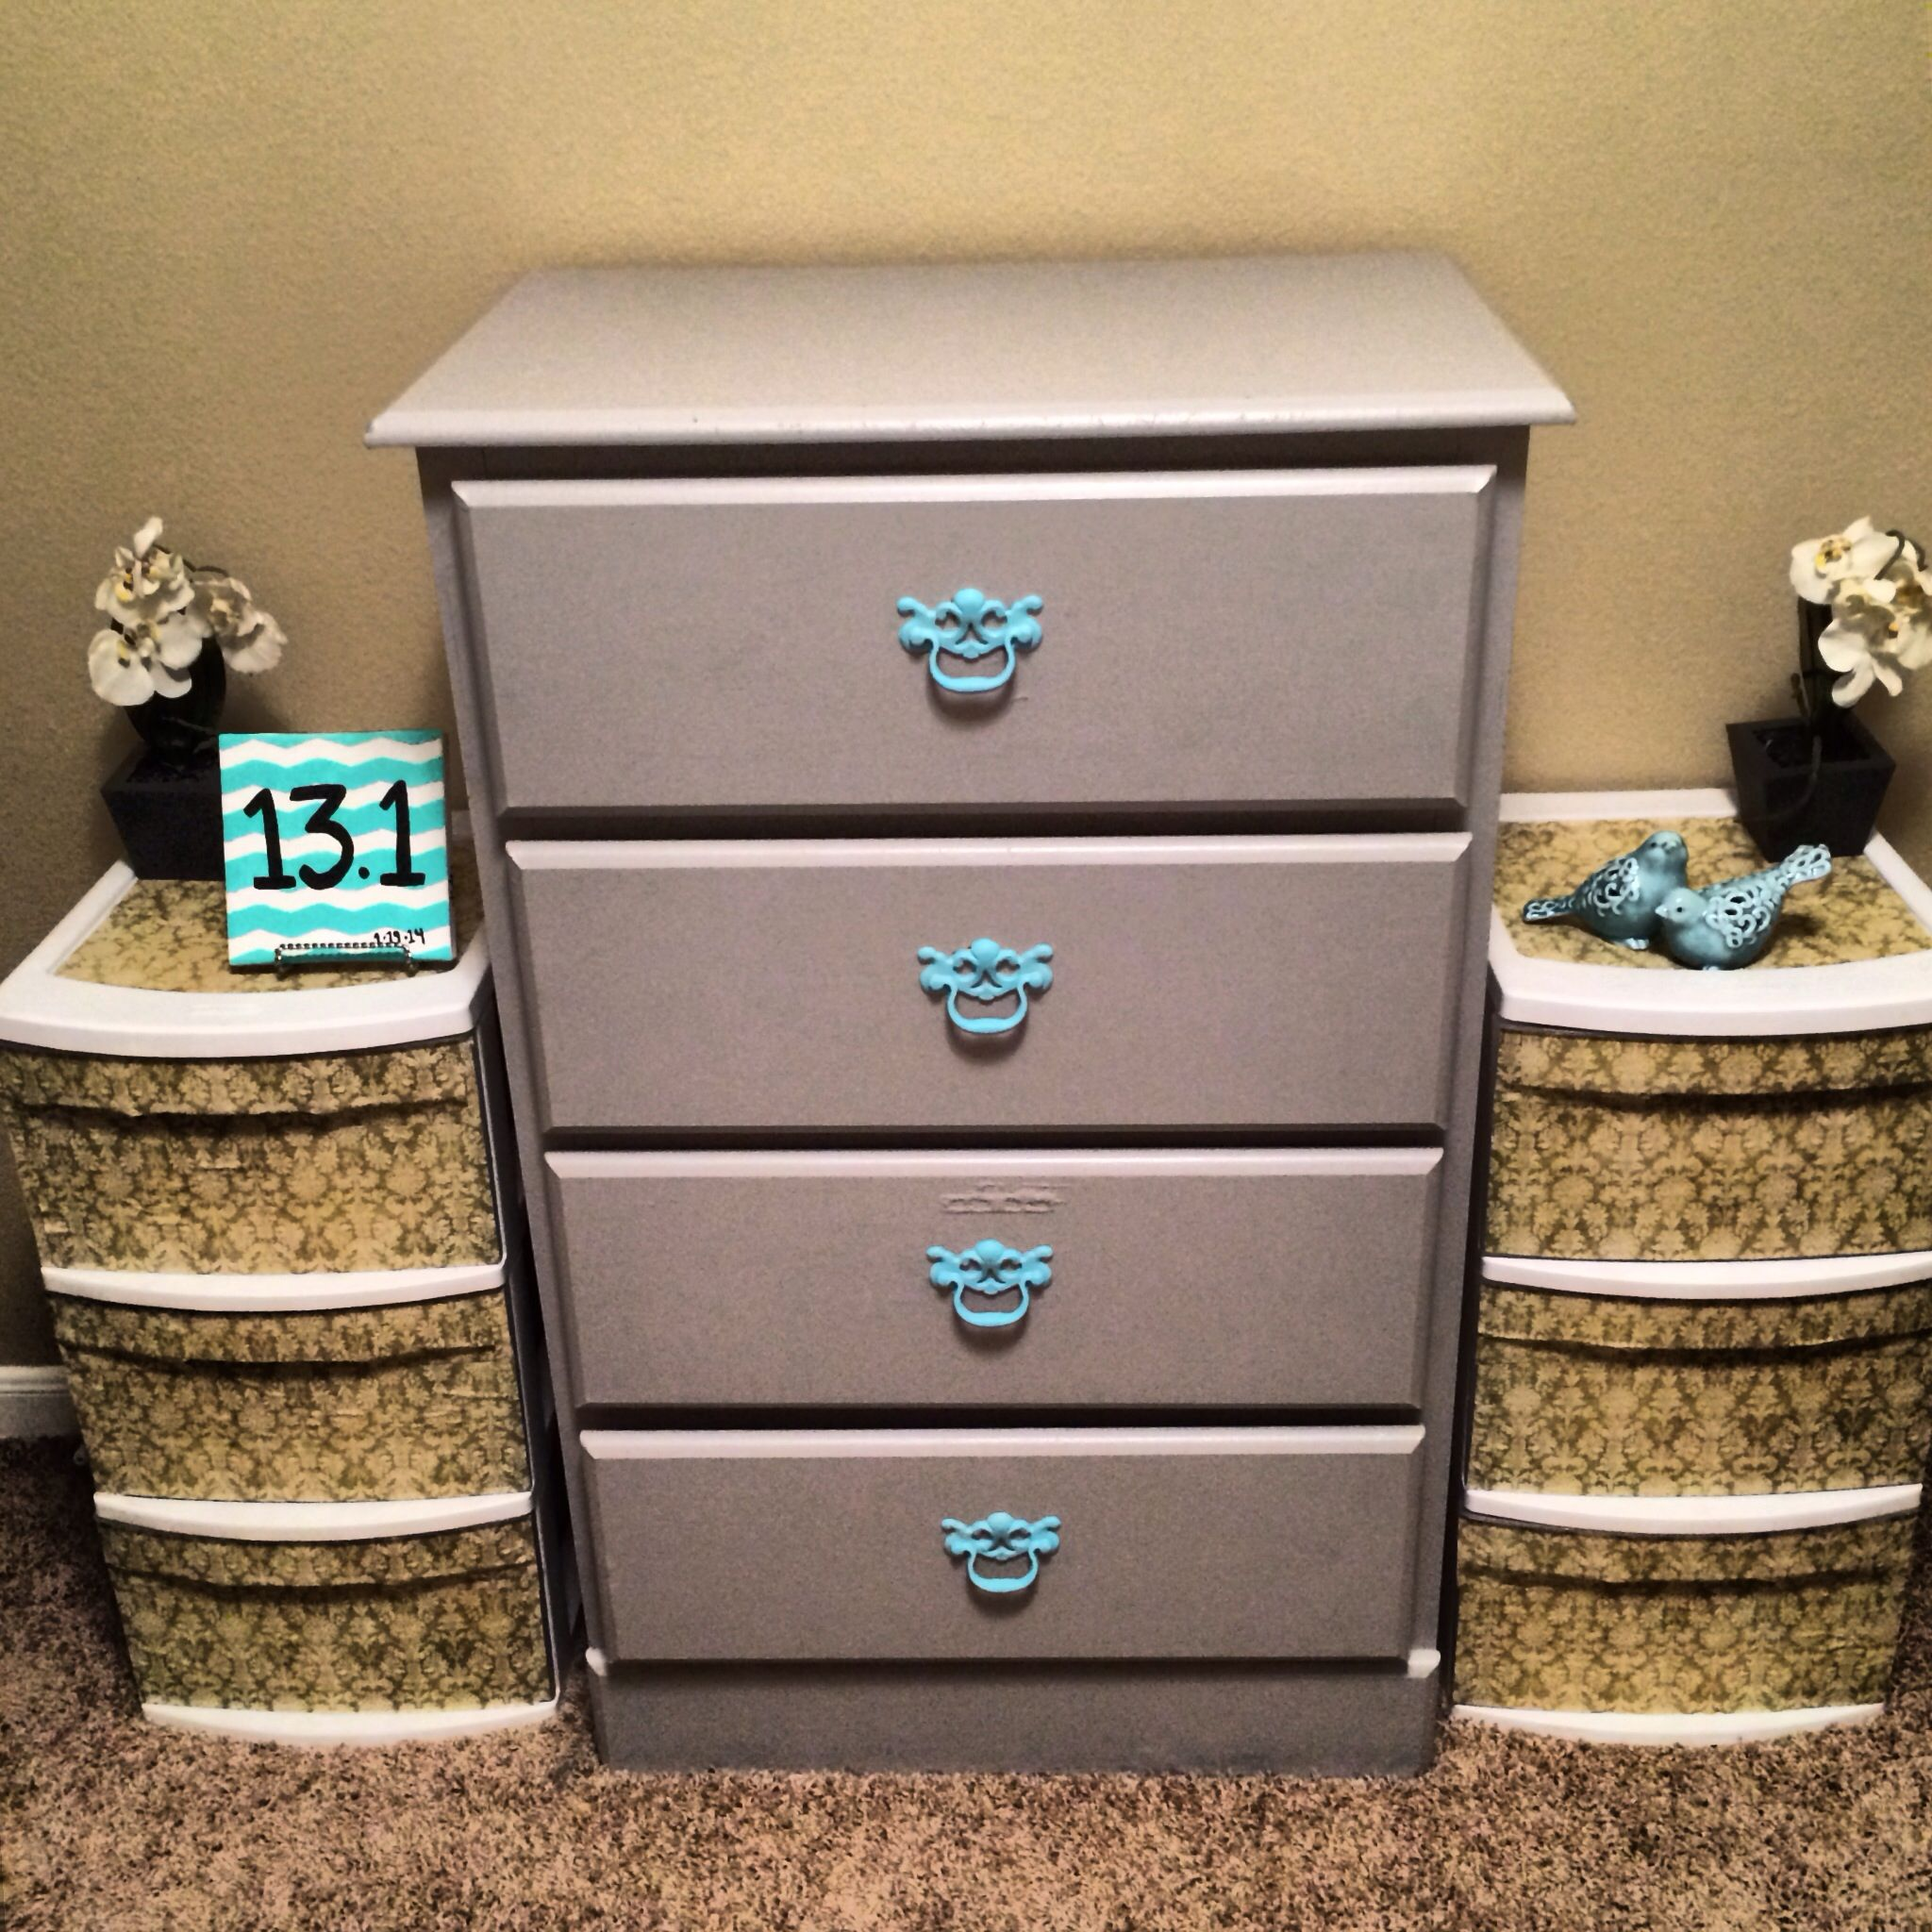 Modpodge Plastic Containers And Painted Old Dresser Newlook Makeover Can Even Add Pull Tab Plastic Storage Drawers Plastic Drawer Makeover Craft Room Storage